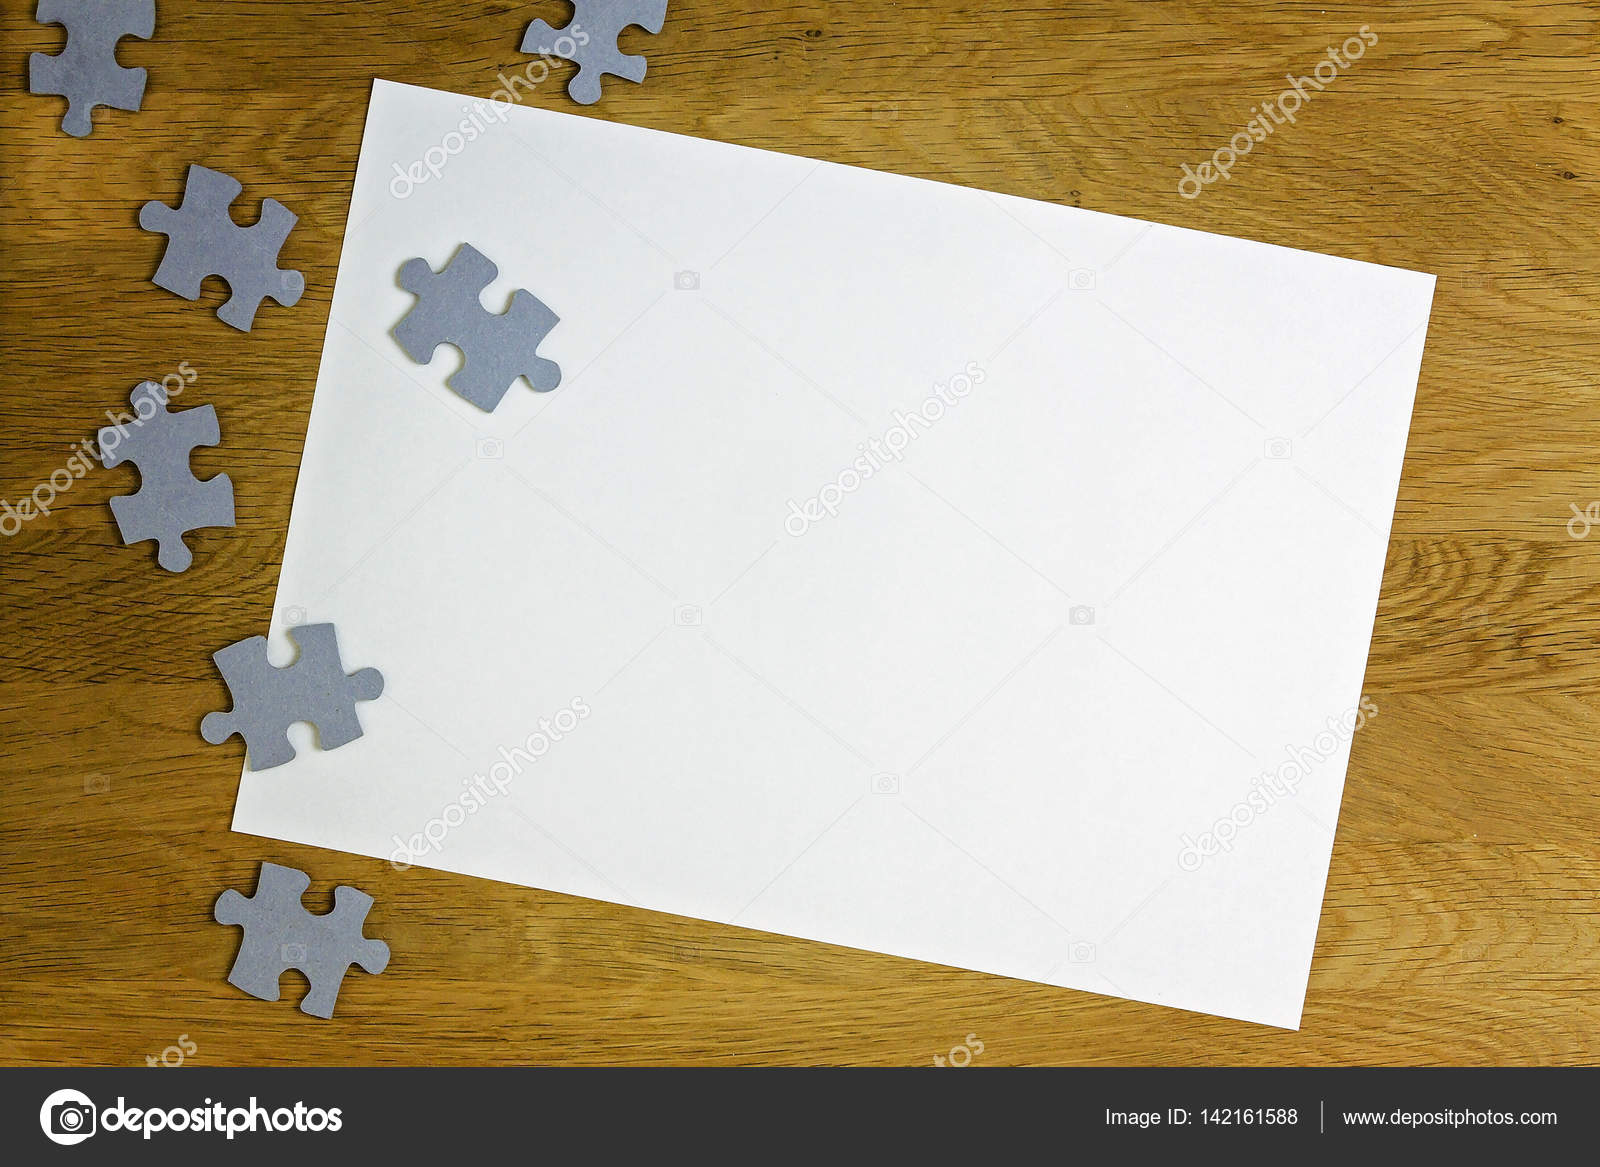 white blank sheet of paper surrounded by puzzle pieces on wooden